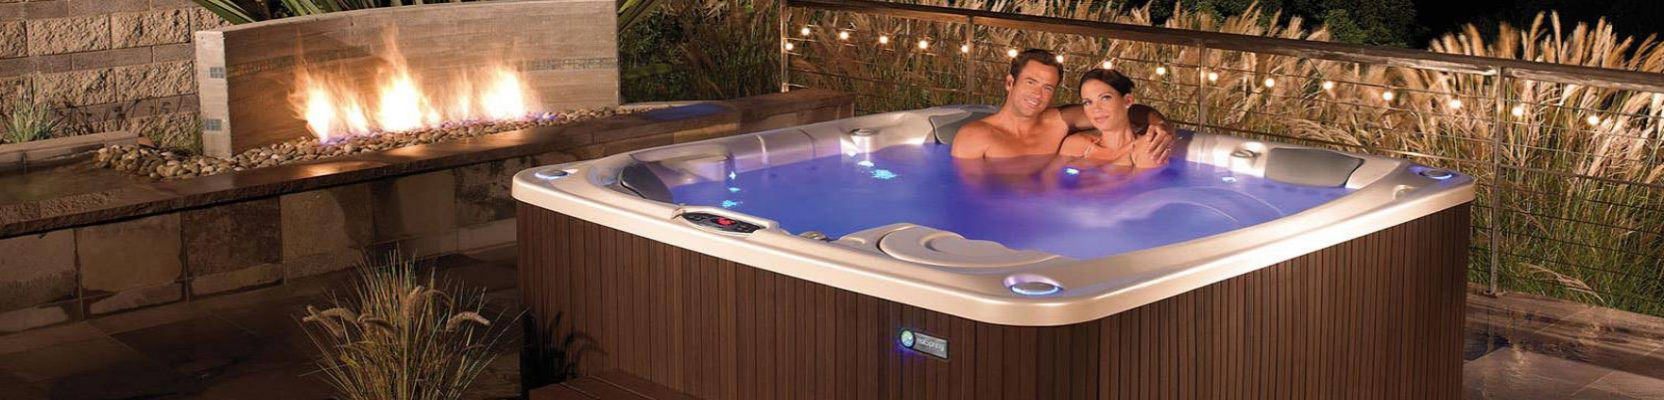 Hot Tub Repair Home Jersey Hot Tub Repair